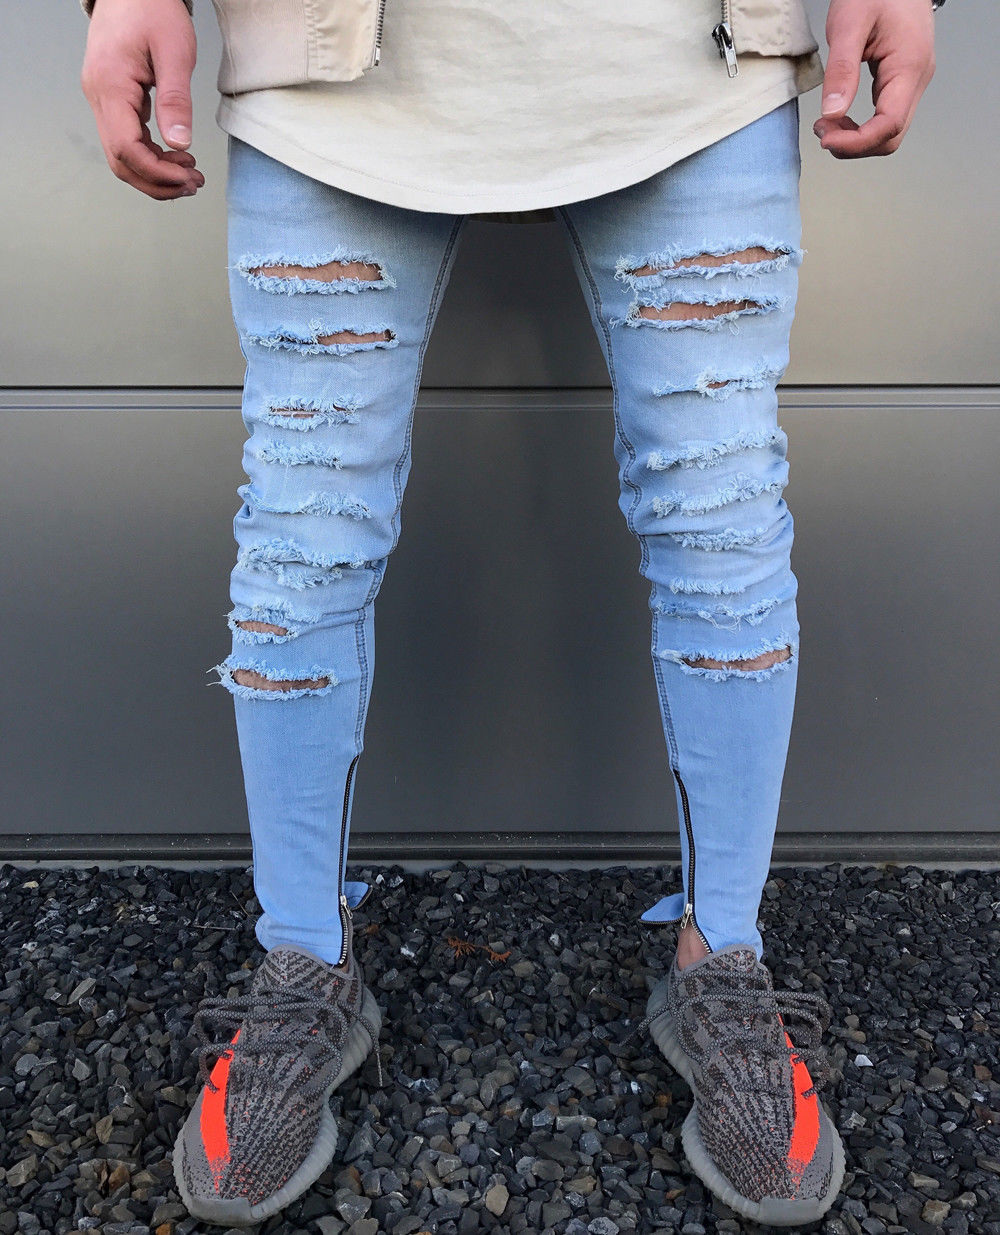 Fashion Men Ripped Skinny Hole Jeans Destroyed Frayed Slim Fit Denim Pants Stylish Mens Fake Zipper Pencil Denim Jeans dsel brand men jeans denim white stripe jeans mens pants buttons blue color fashion street biker jeans men straight ripped jeans